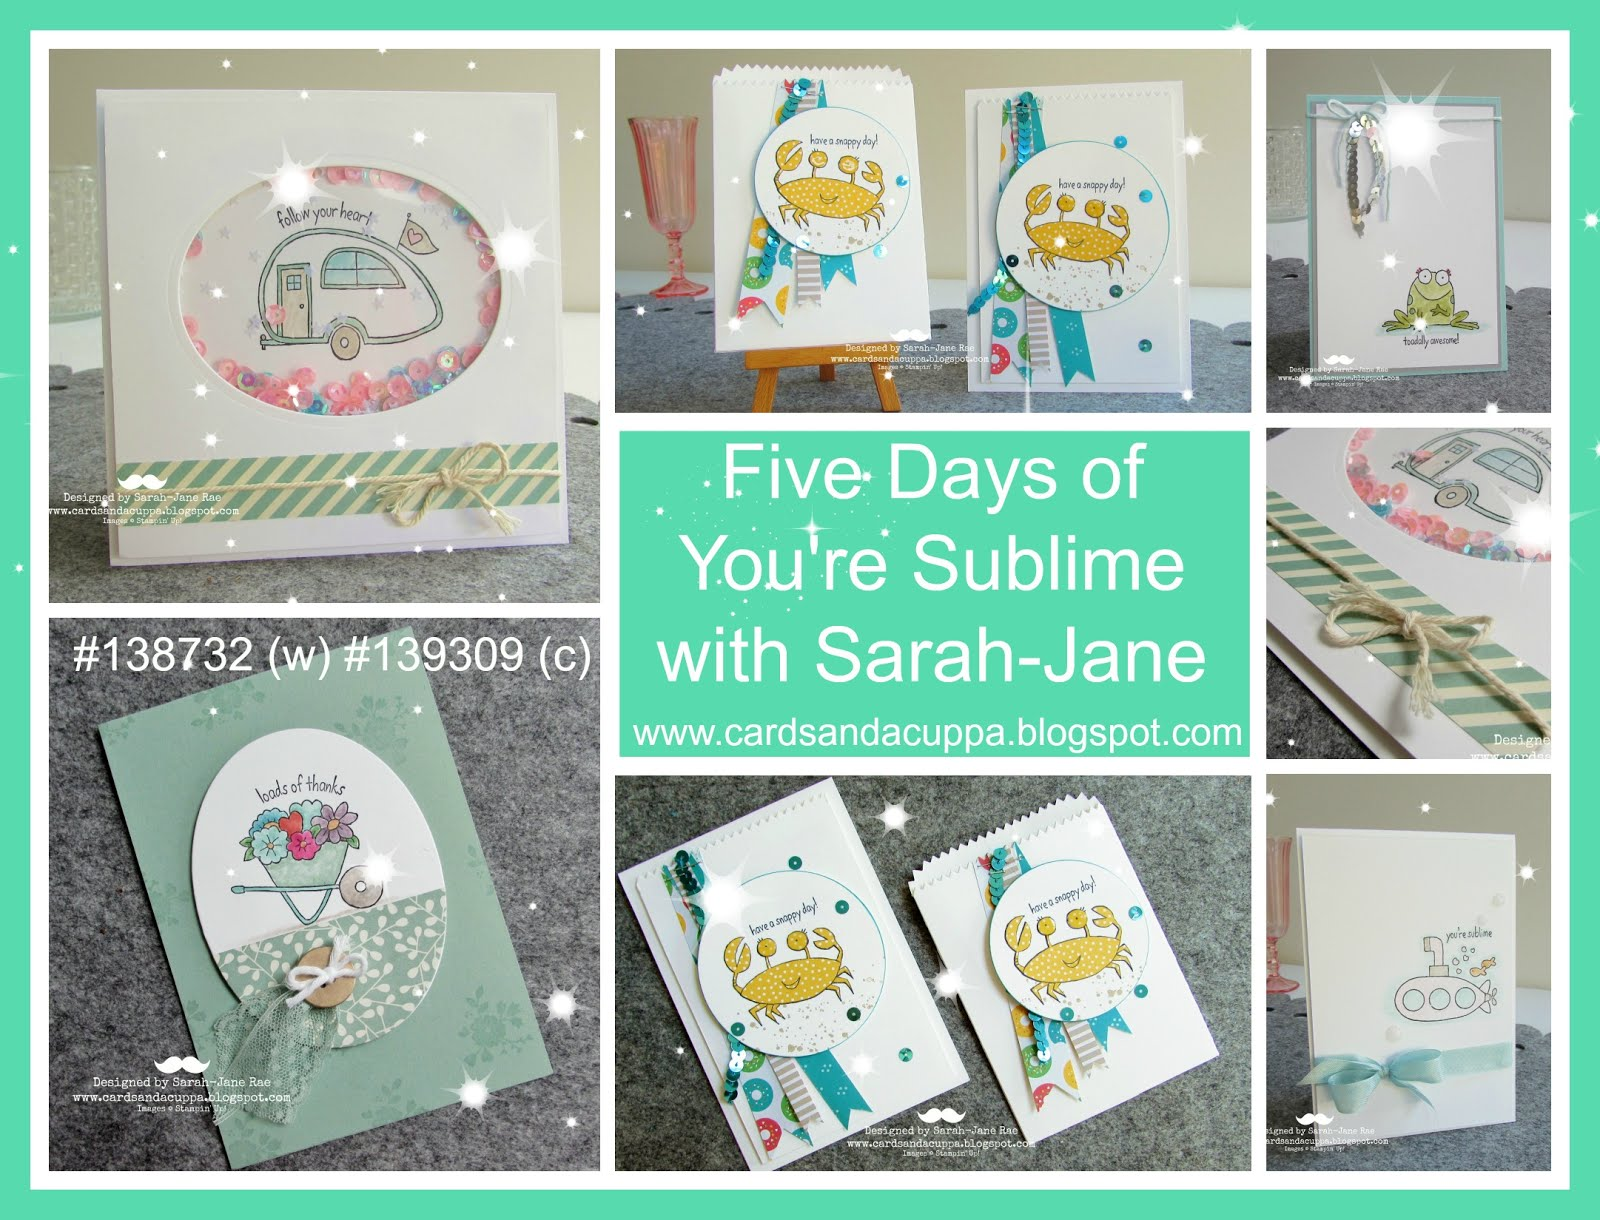 Five days of You're Sublime